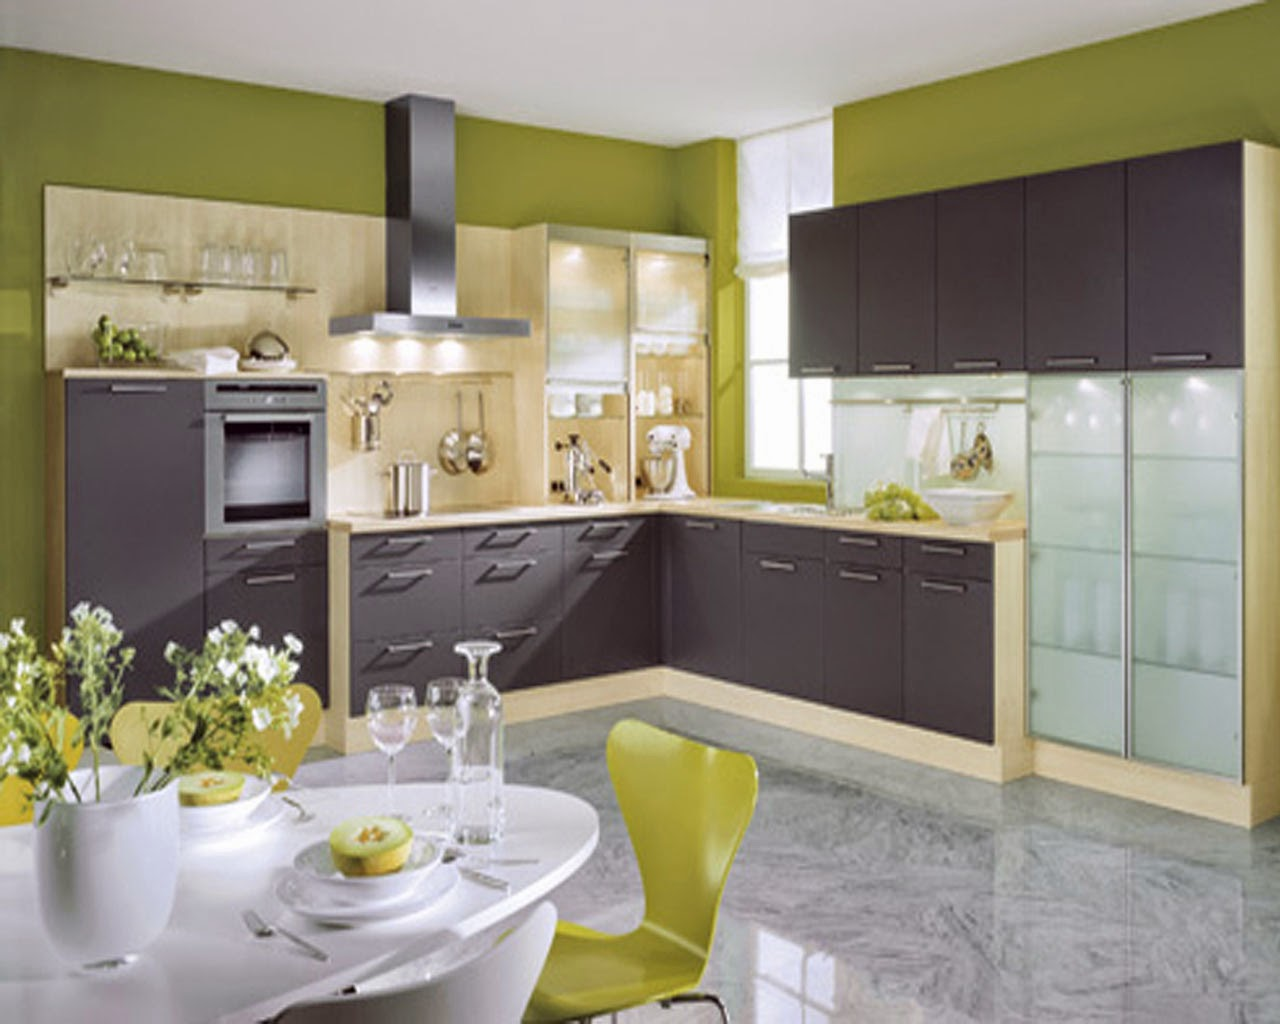 Kitchen designing ideas 2014 freshnist design Good kitchen design images